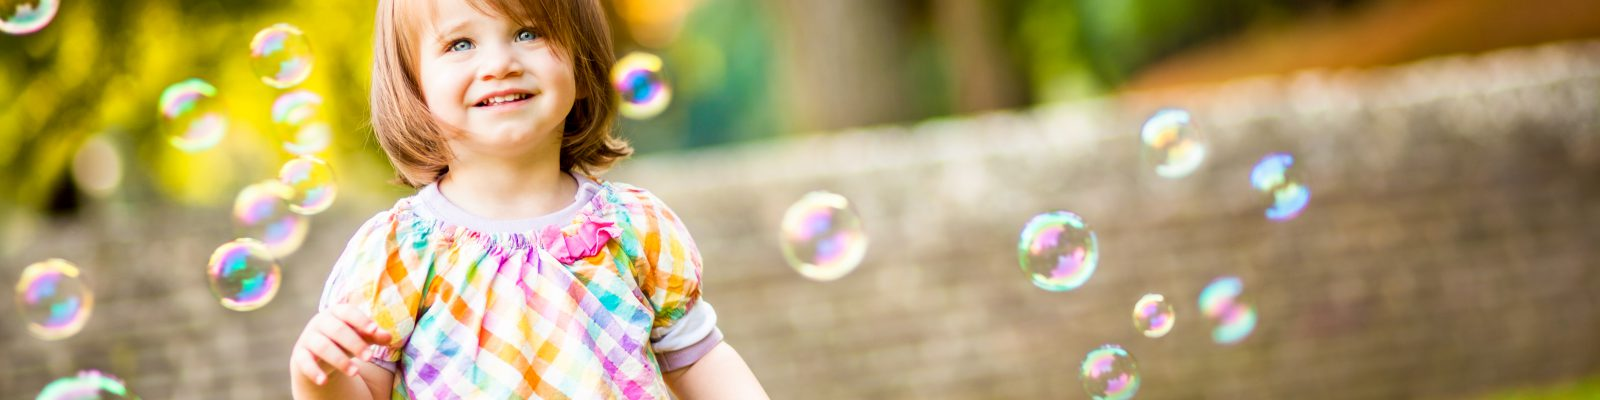 Close-up Of Smiling Little Standing Around Bubbles In Garden